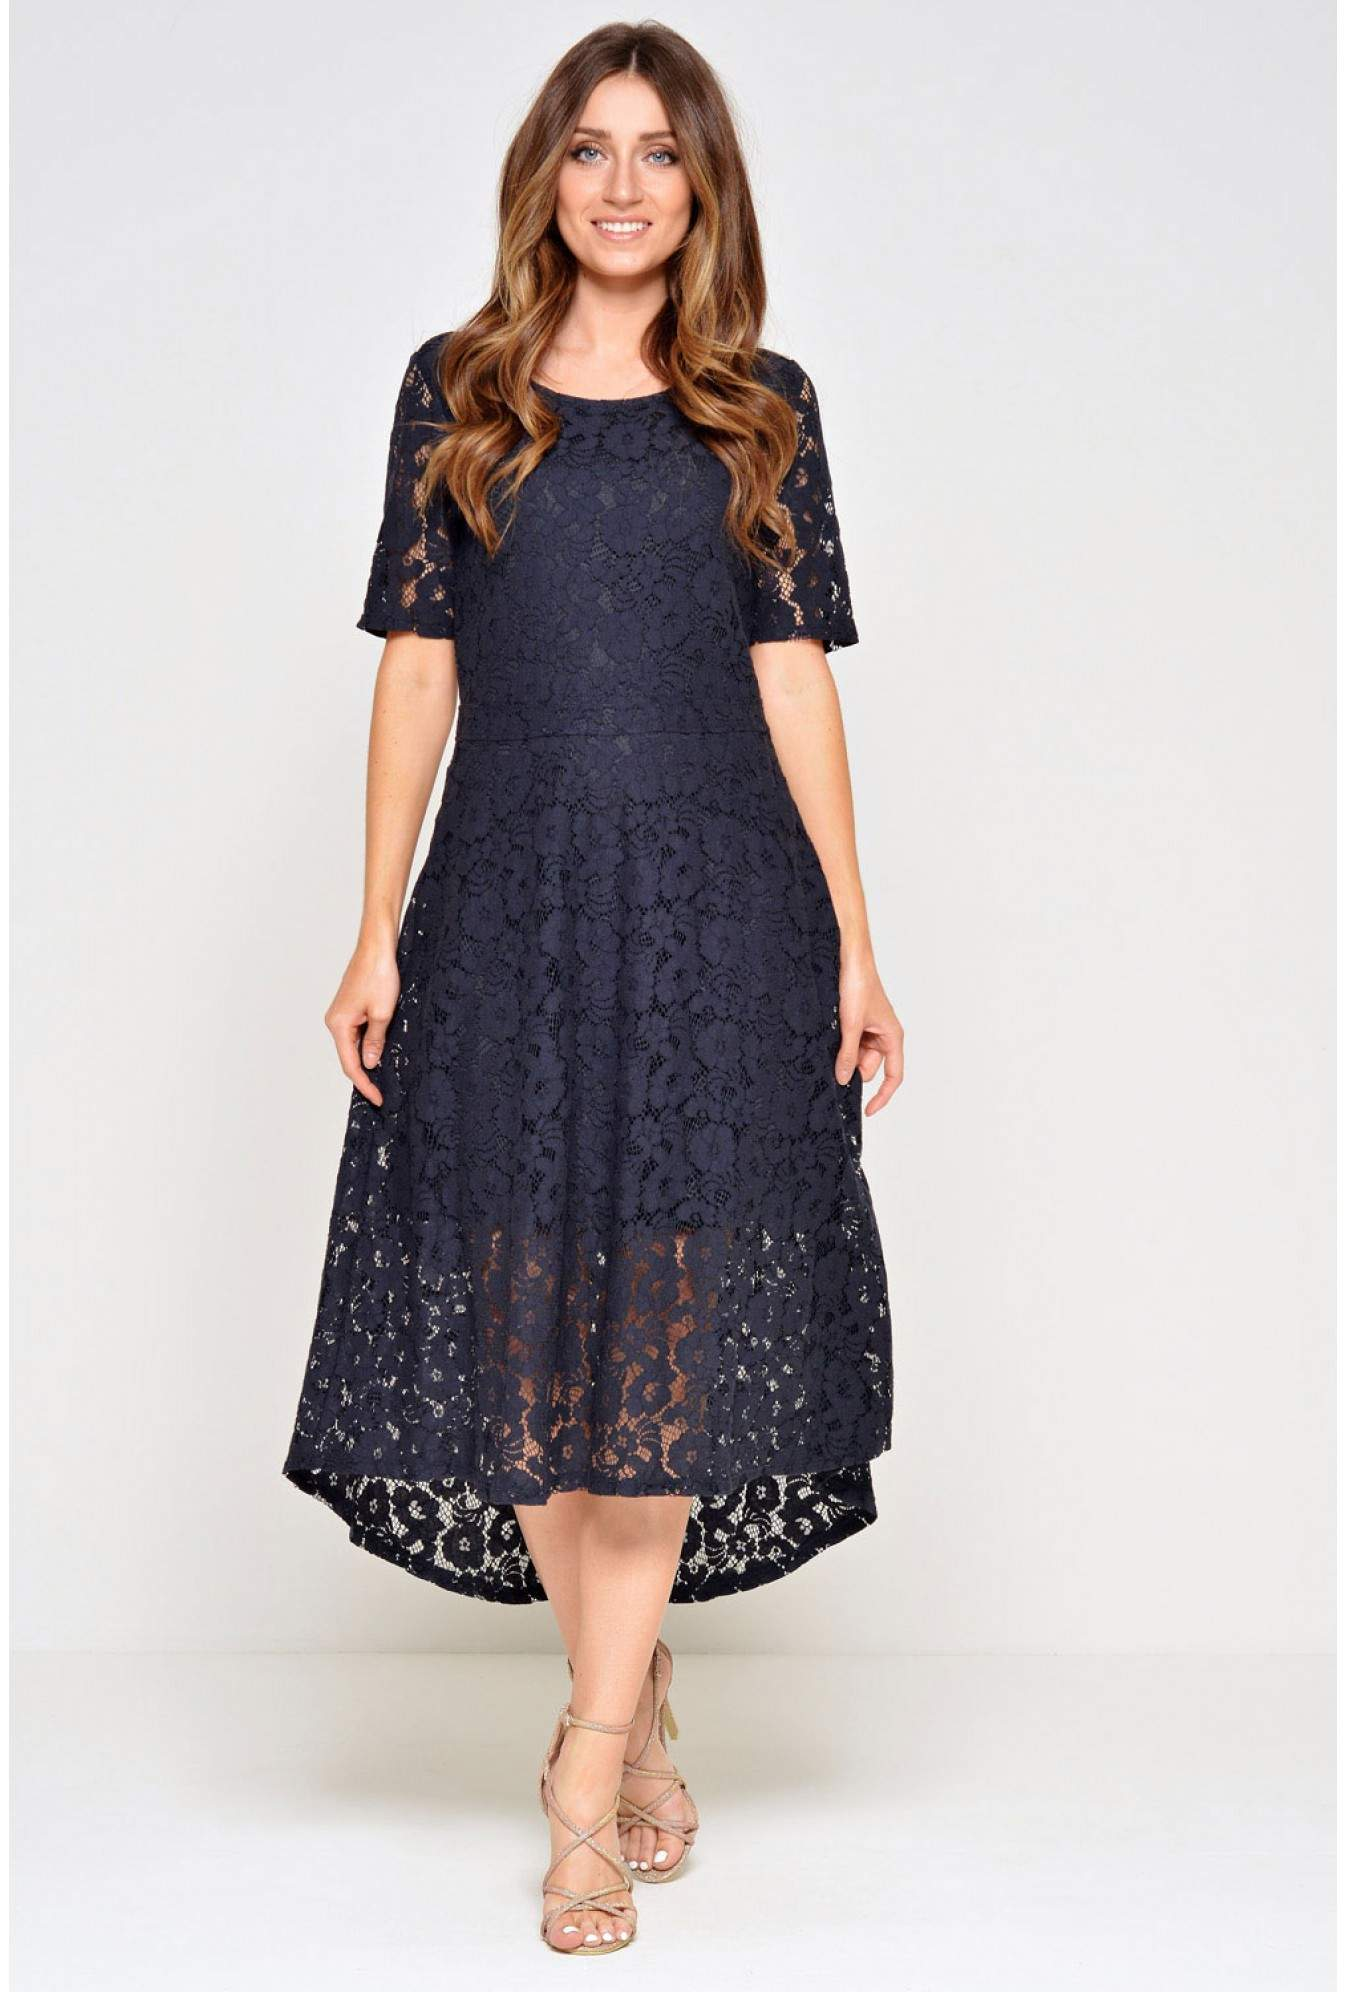 2879c0f87af3 Vila Cary 1 2 Lace Dress in Navy